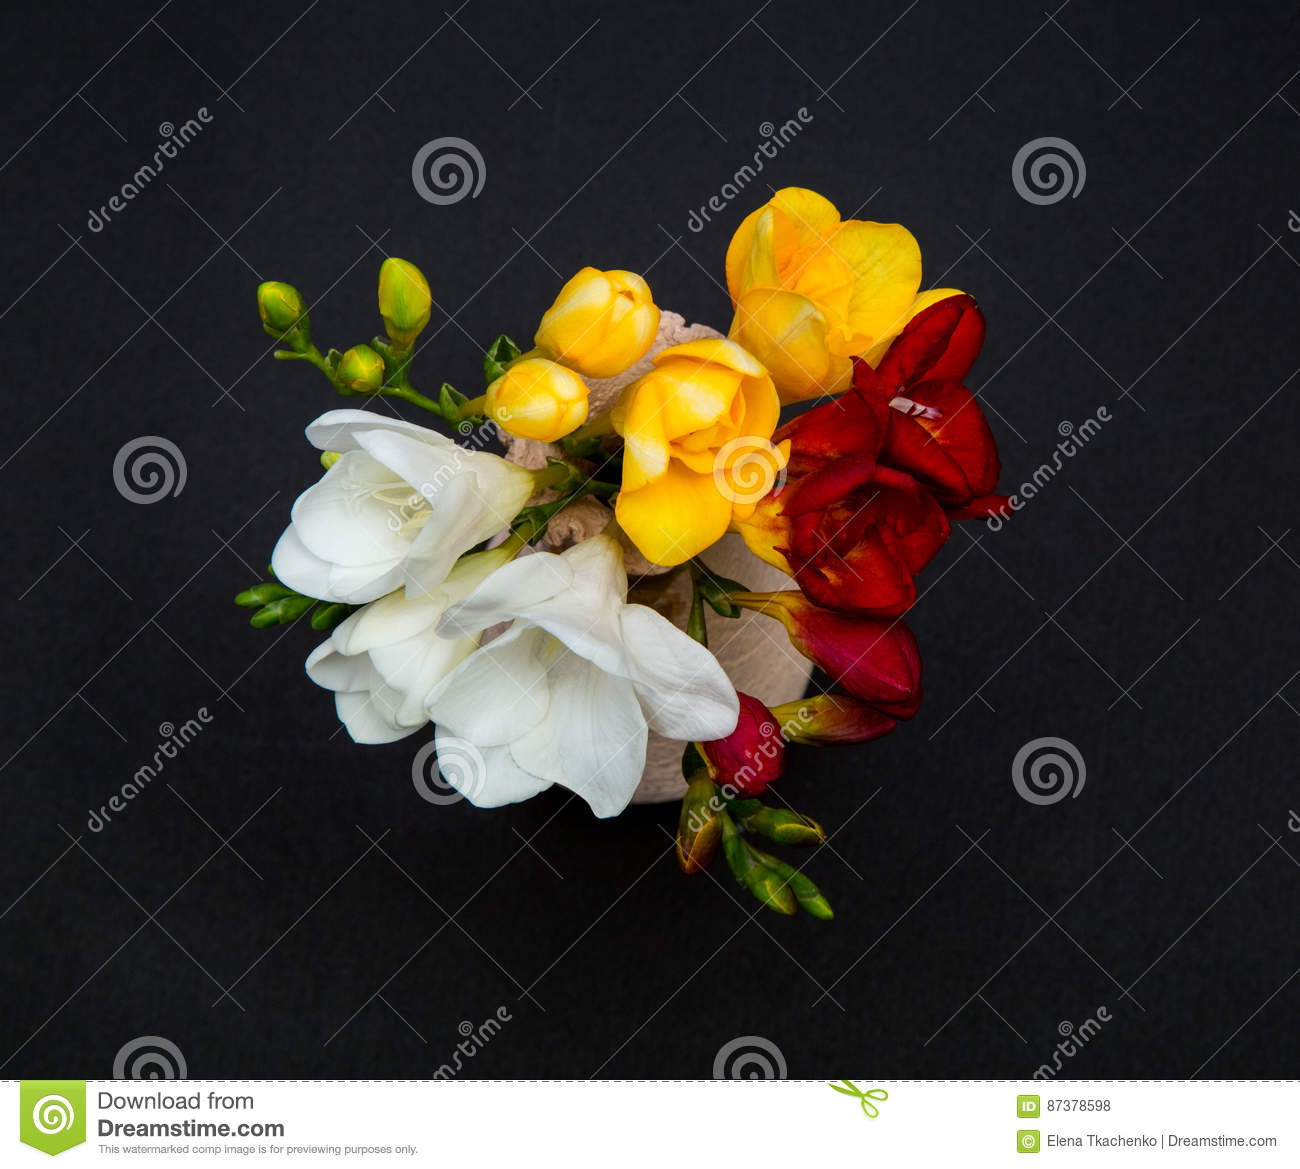 Flowers Of Freesia White Yellow And Red In A Small Vase On A Black